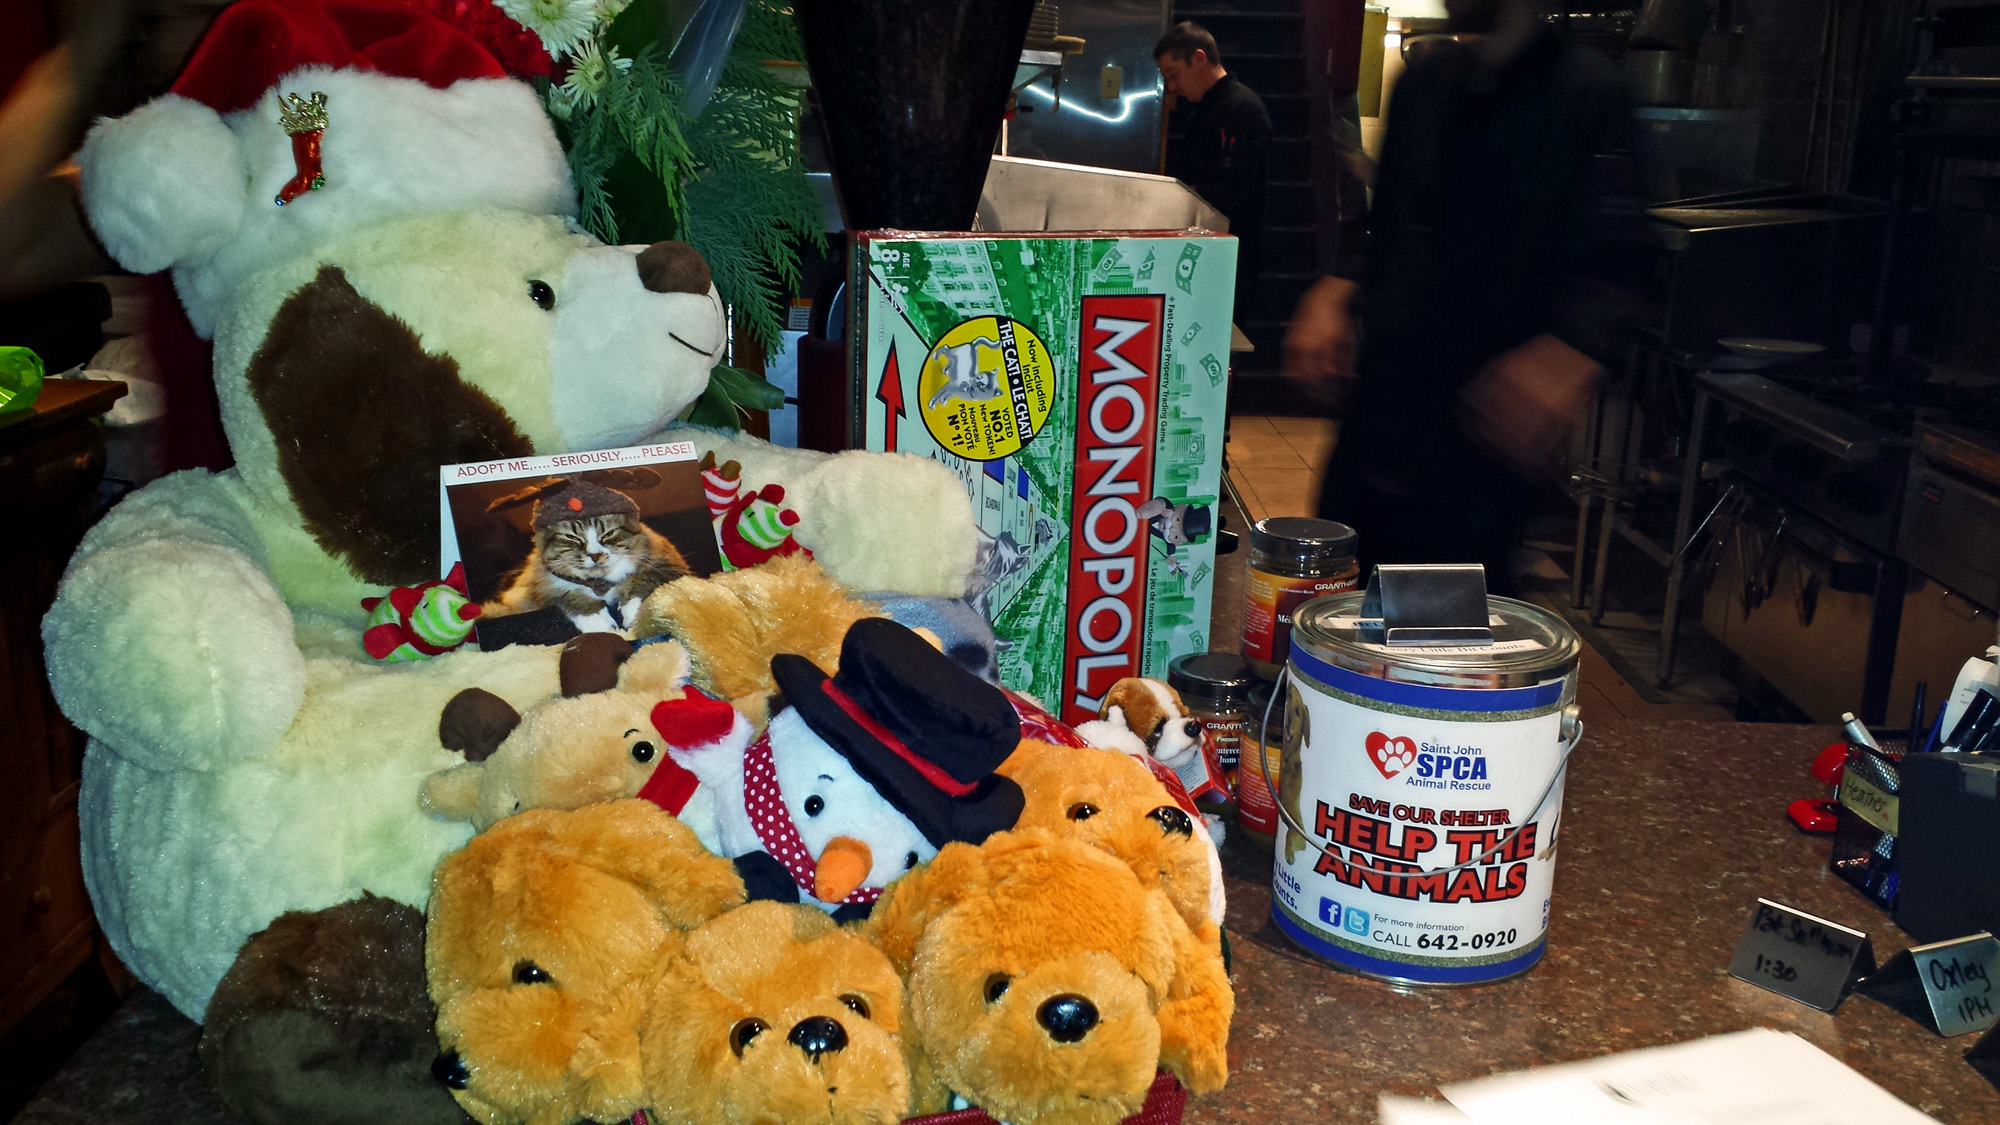 Tips, toys and our donation table - all for the Saint John SPCA Animal Rescue.